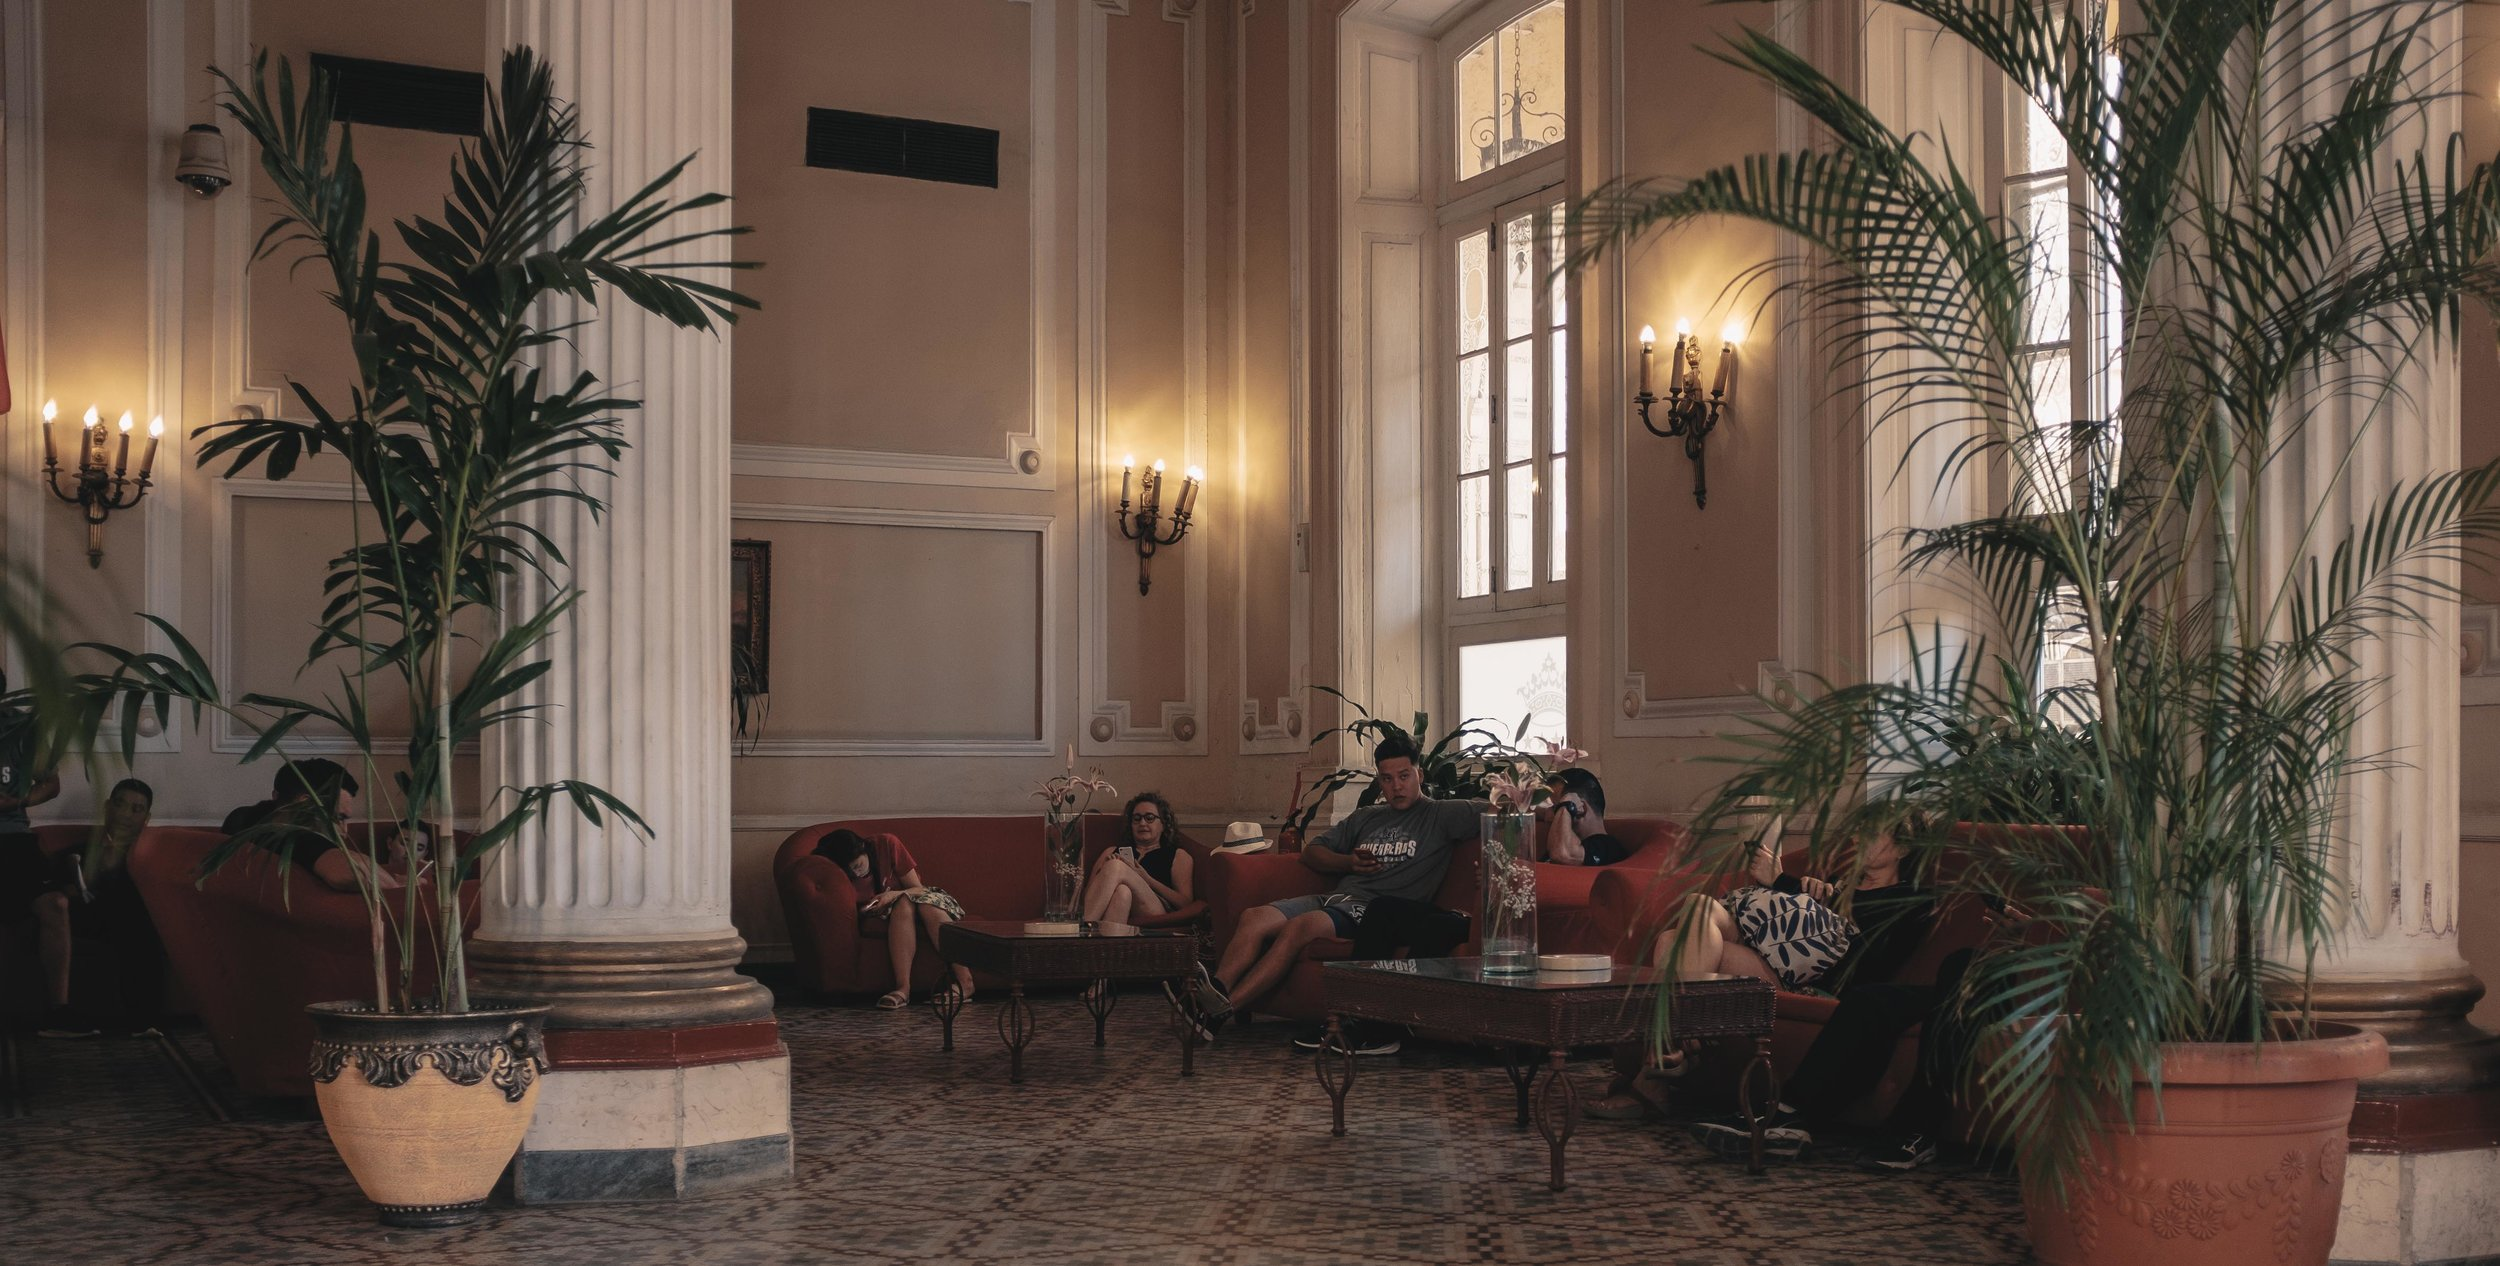 The Hotel Gran Caribe Plaza, one of the properties surrounding Havana's Parque Central